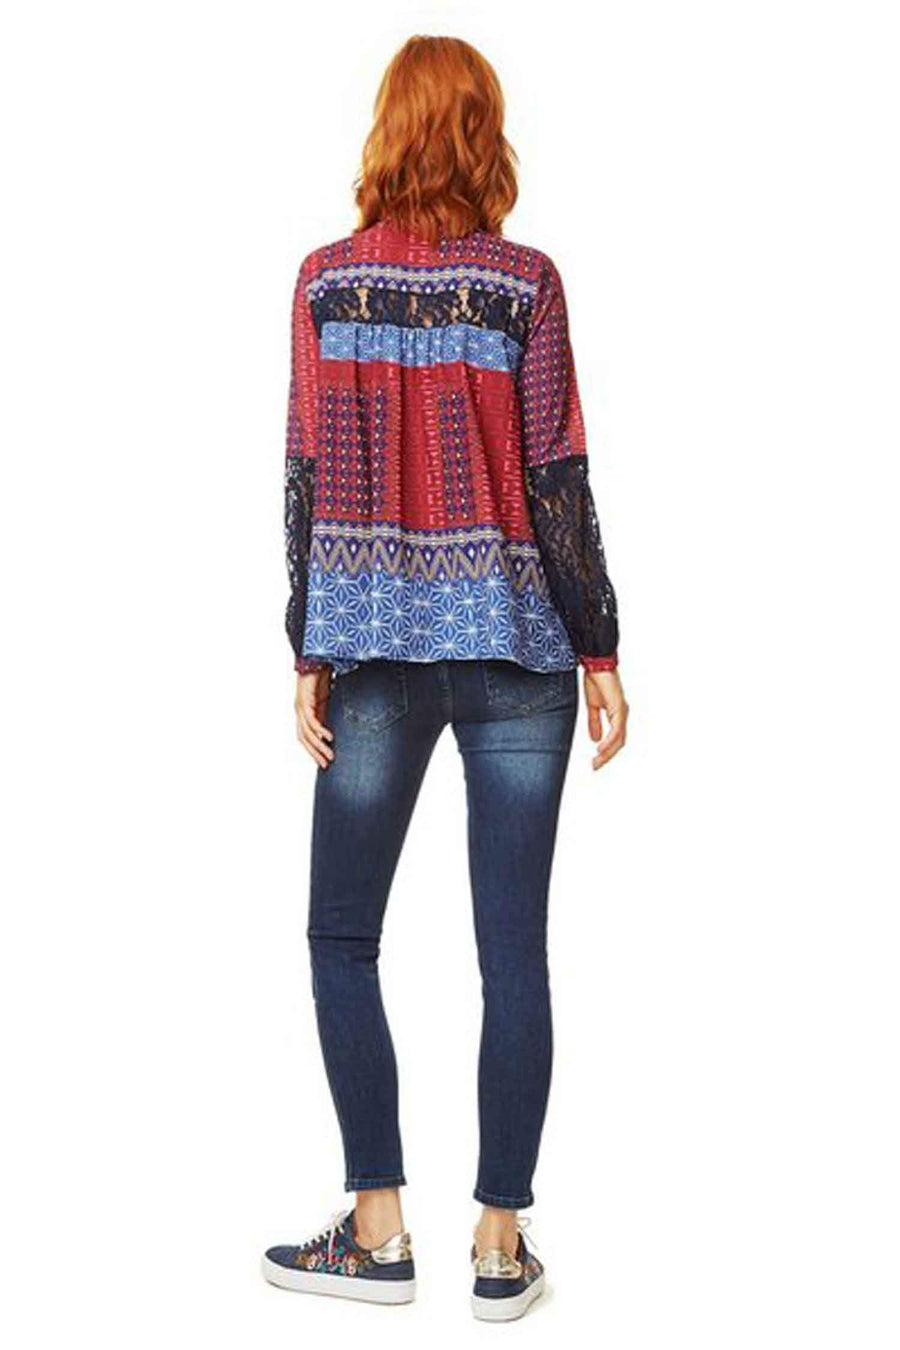 Shop Online Mona Shirt by Desigual  Frockaholics Tops